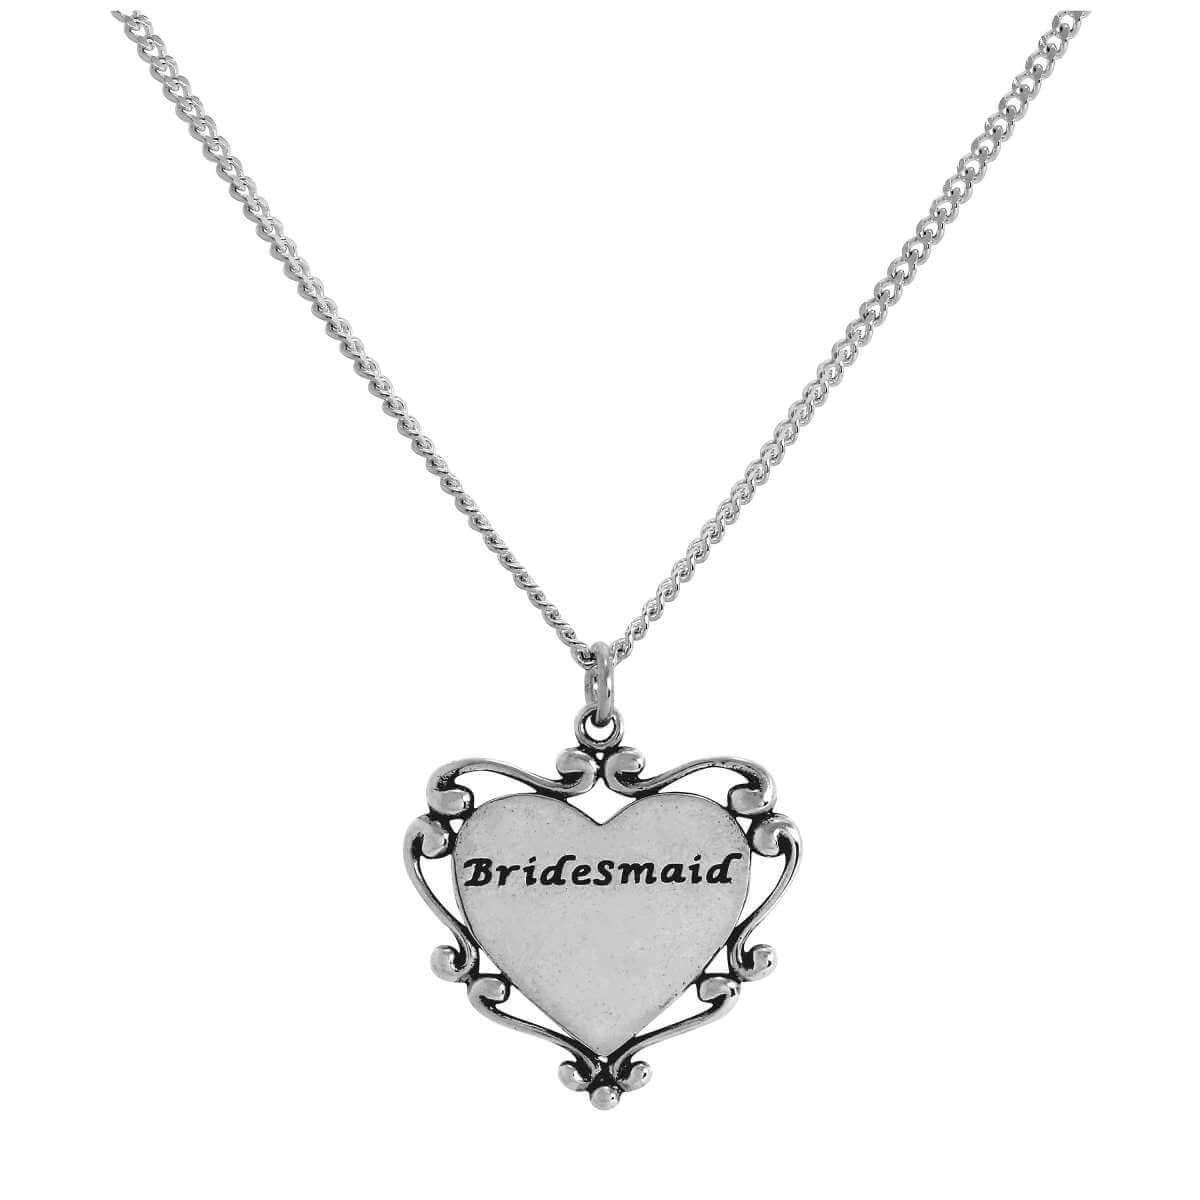 Sterling Silver Bridesmaid Heart Pendant on Chain 16 - 24 Inches